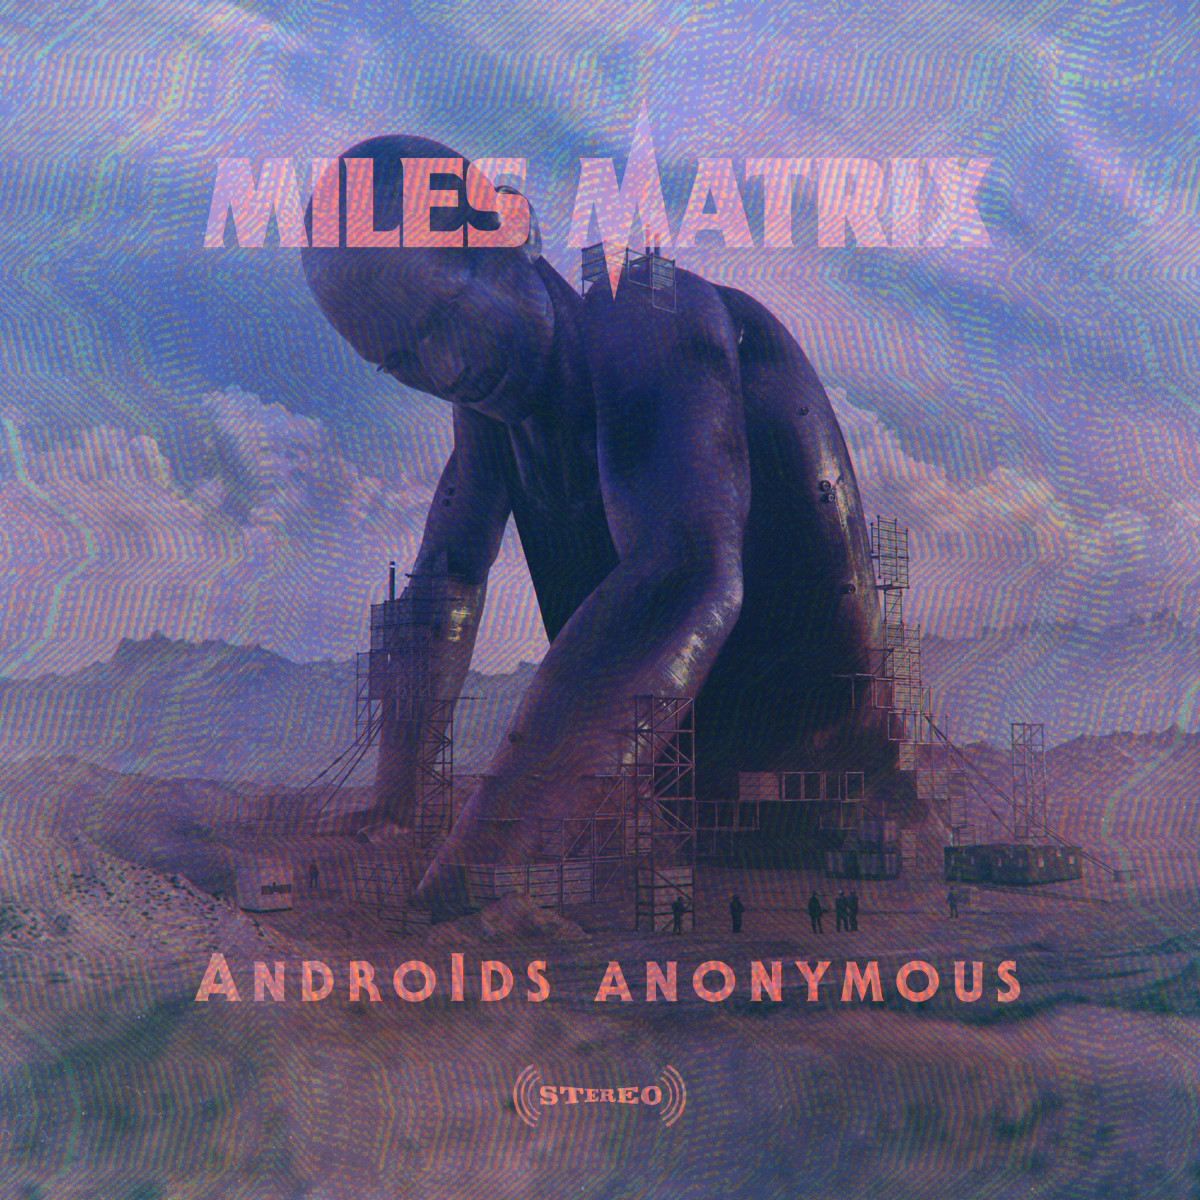 """Synthwave Album Review: """"Androids Anonymous"""" by Miles Matrix"""